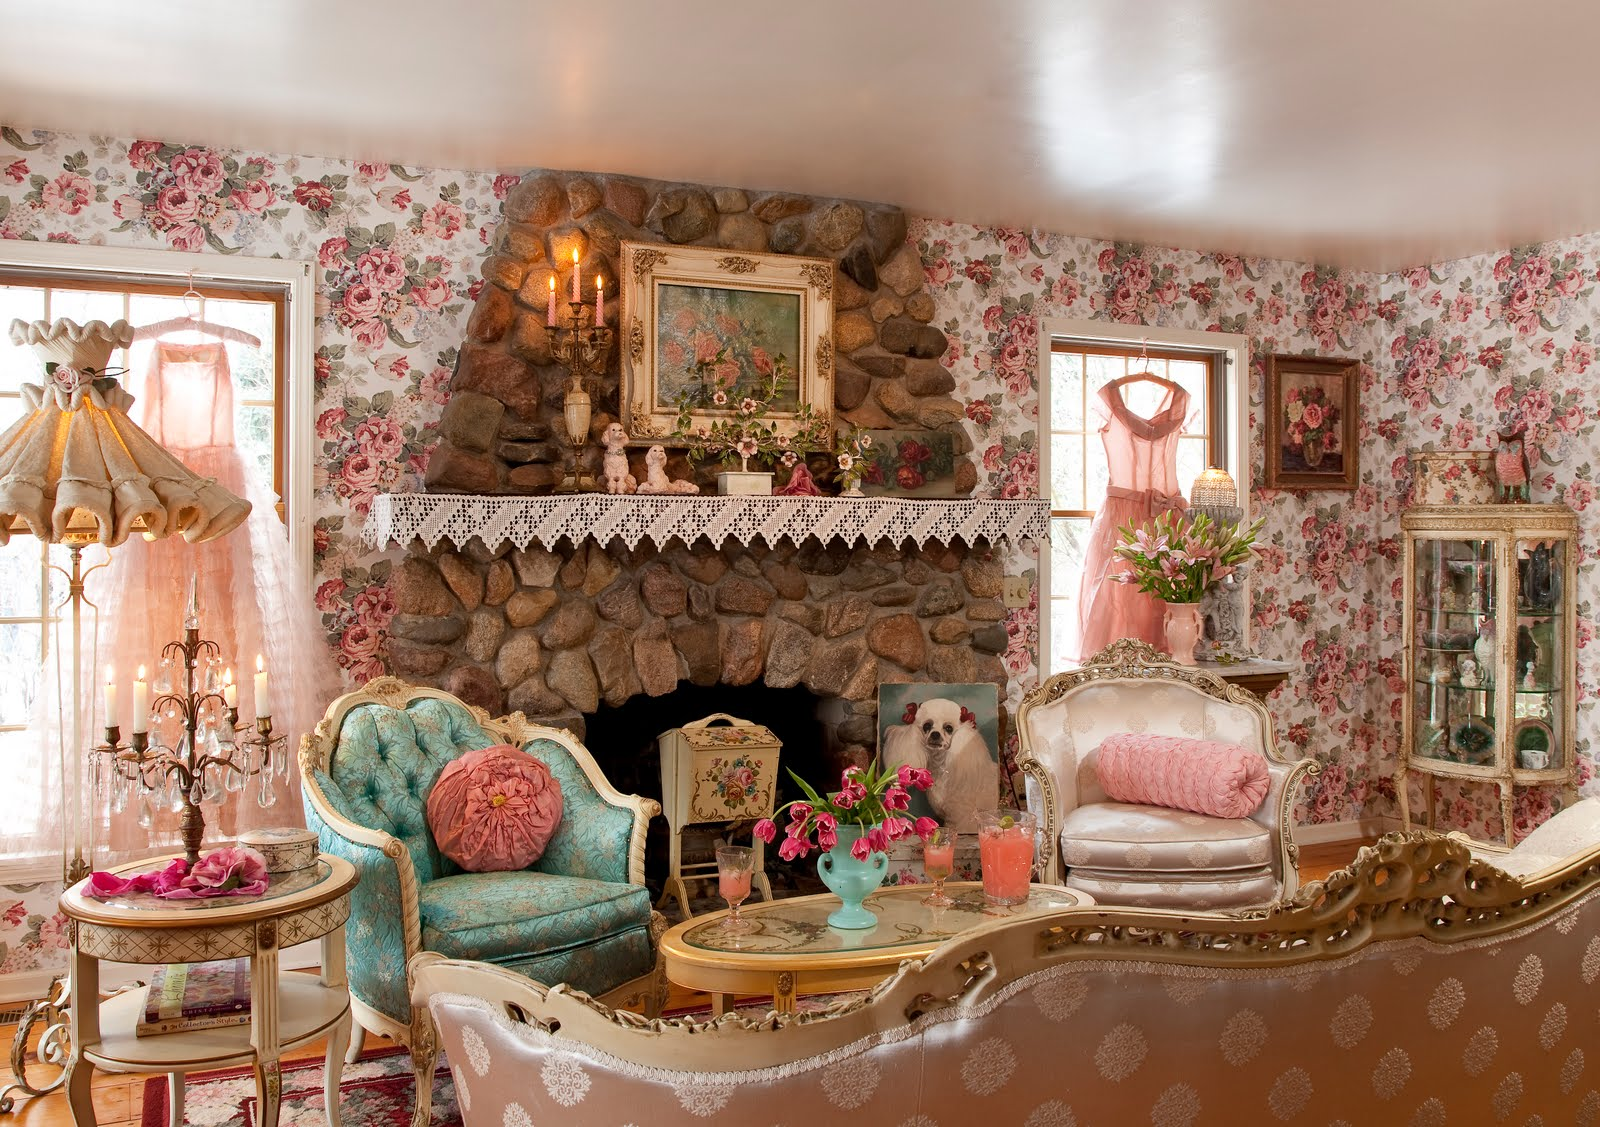 Design Better Decorating Retro Pin Up Living Room 50s Style Paisley Floral Wallpaper Gone With The Wind Interior Decor